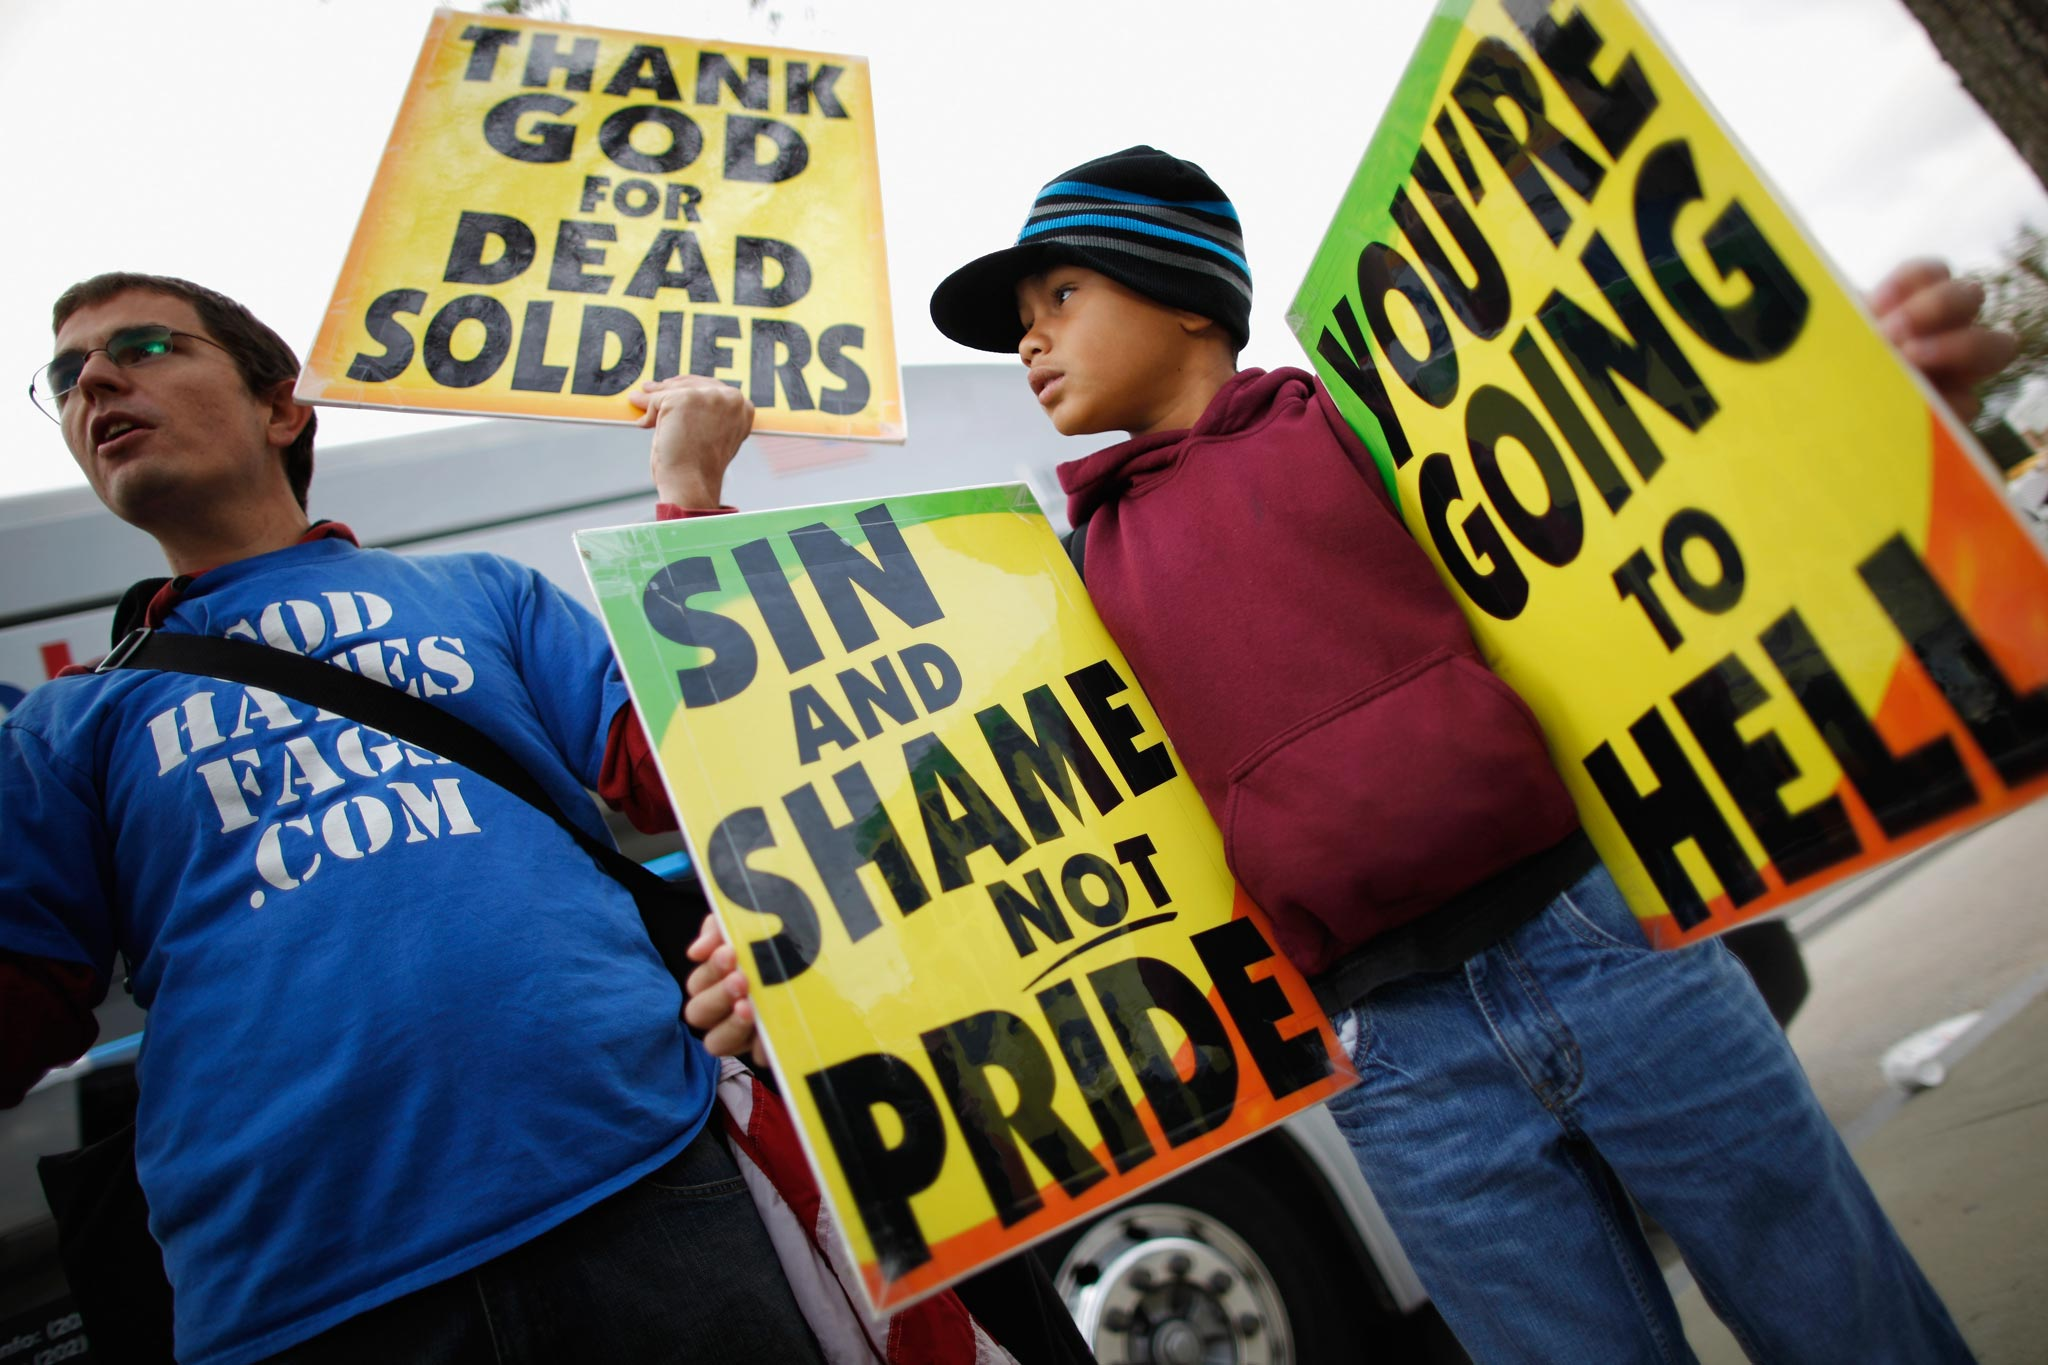 westboro baptist church dating site Archived information about the westboro baptist church founded by fred phelps sr.